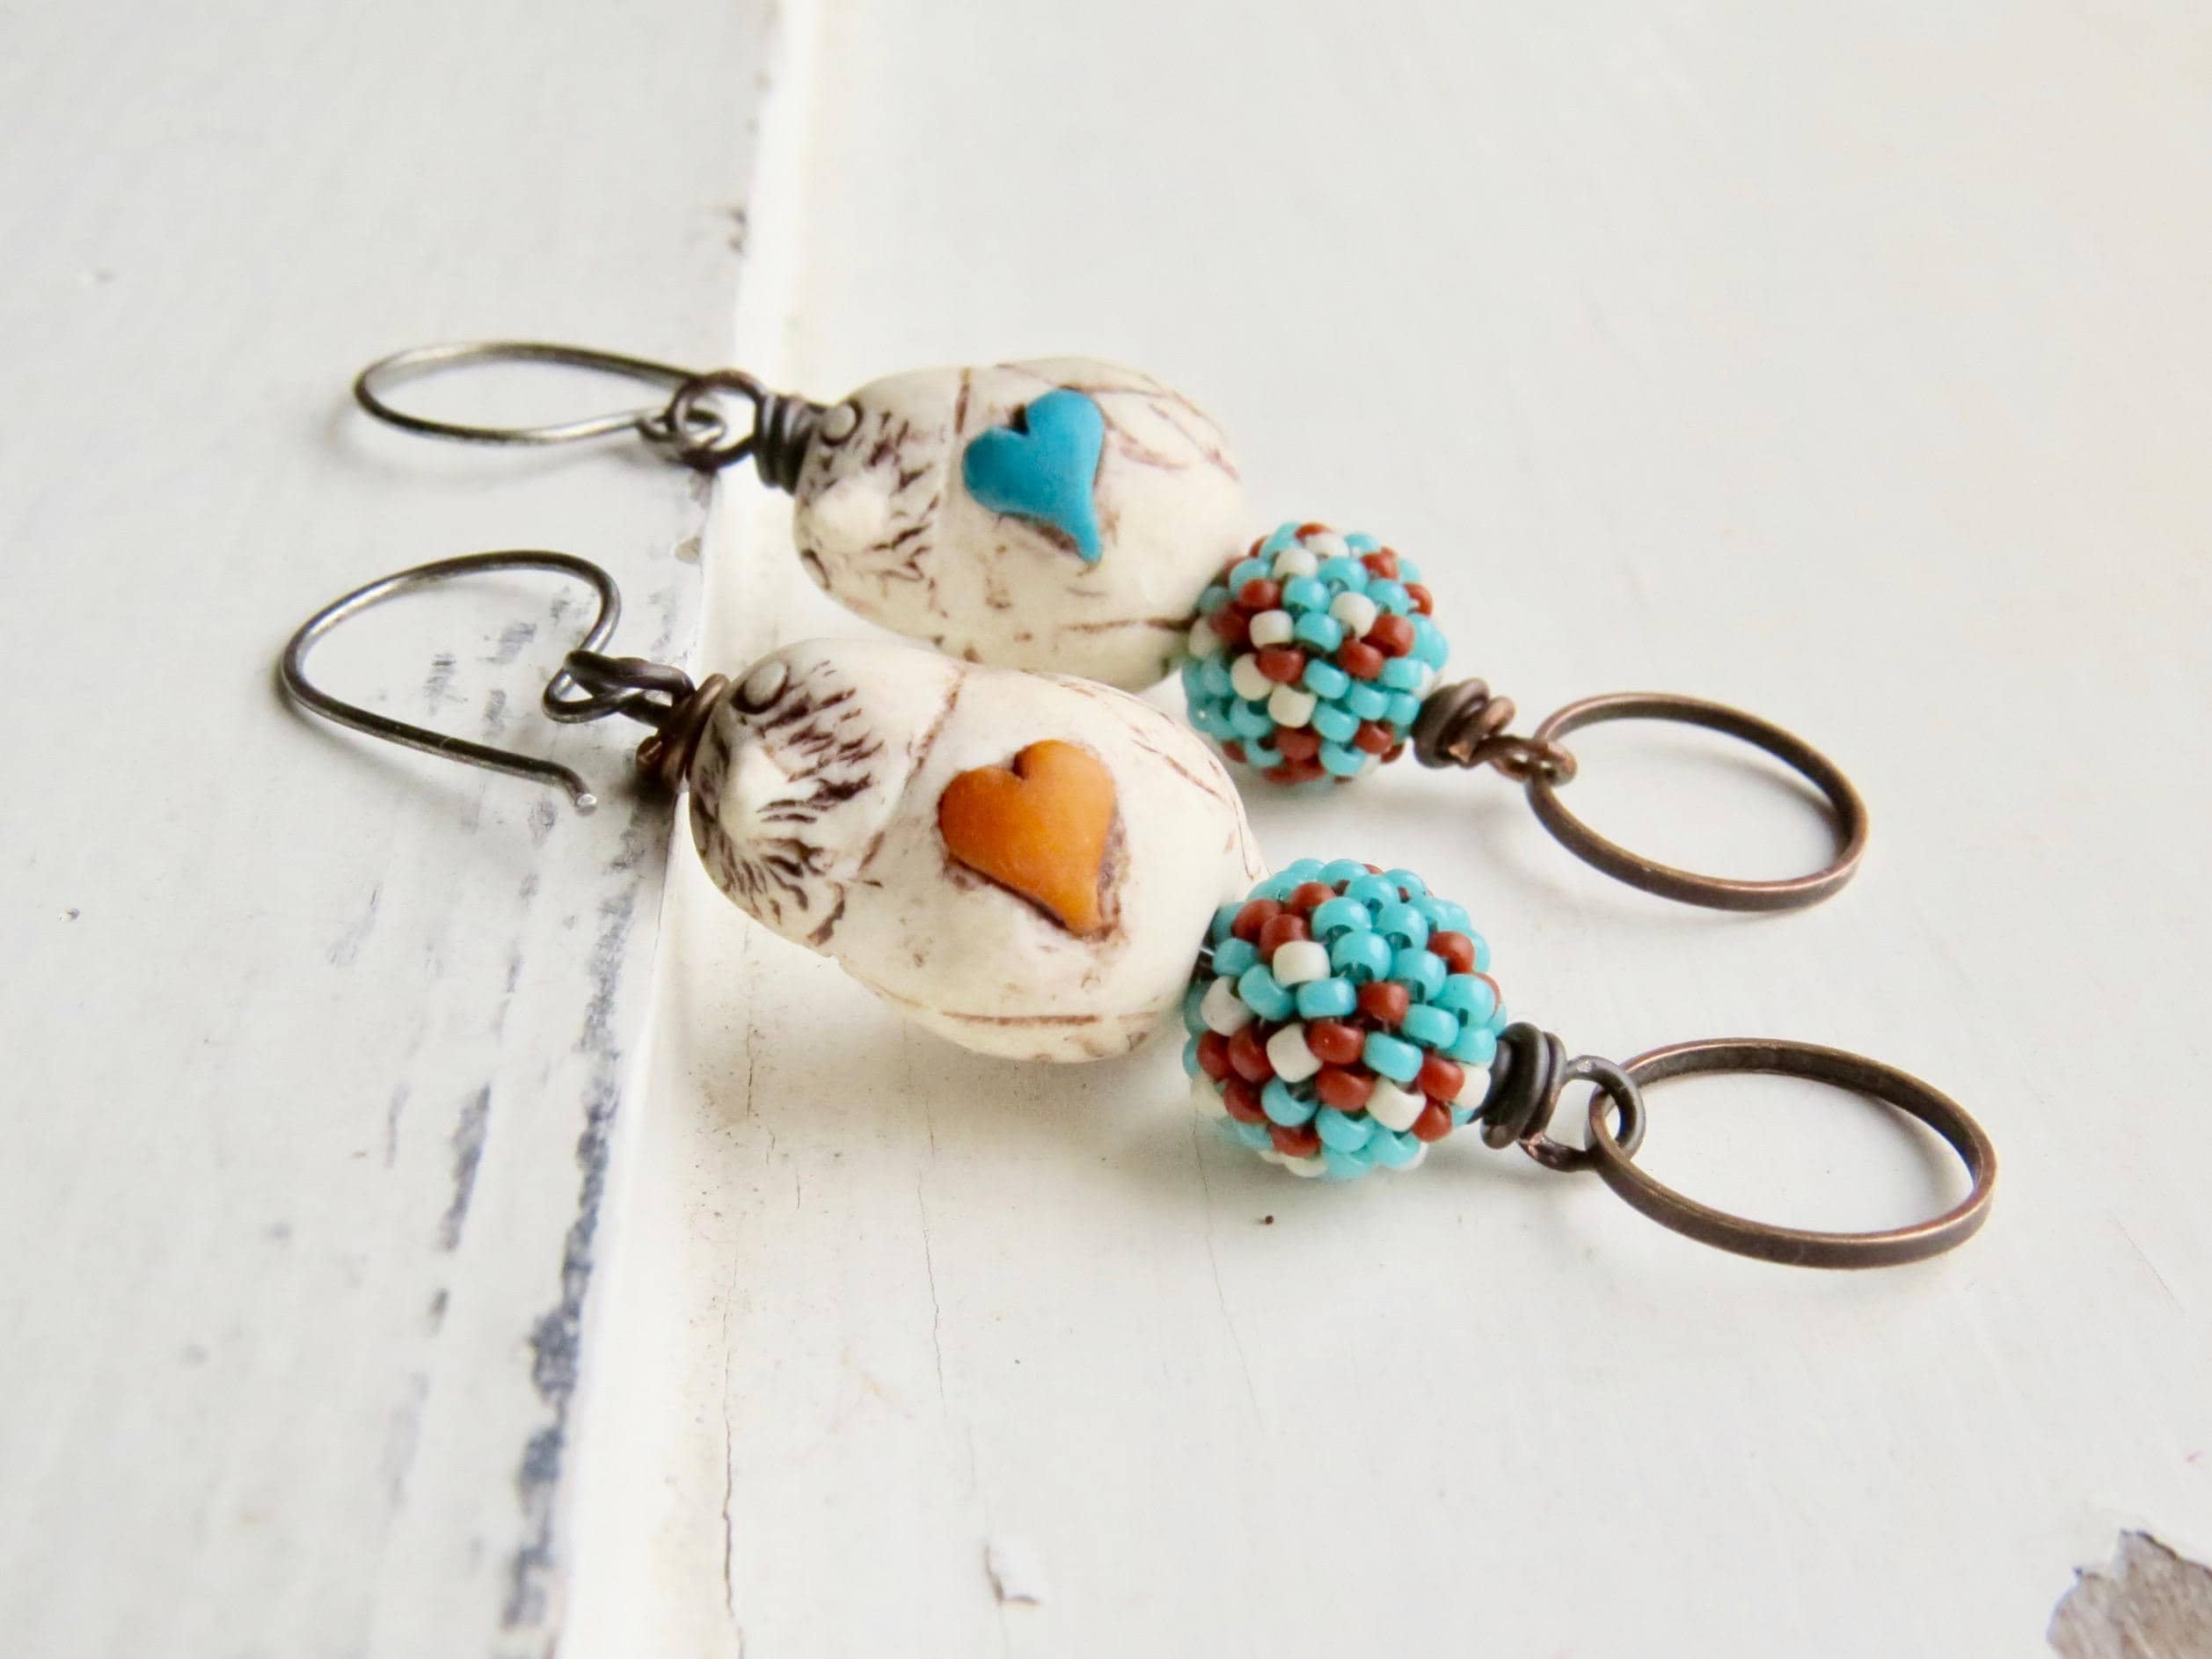 Songbird  subtly mismatched artisanbead bird earrings in aqua orange and cream with polymer and glass beads  Songbead UK narrative